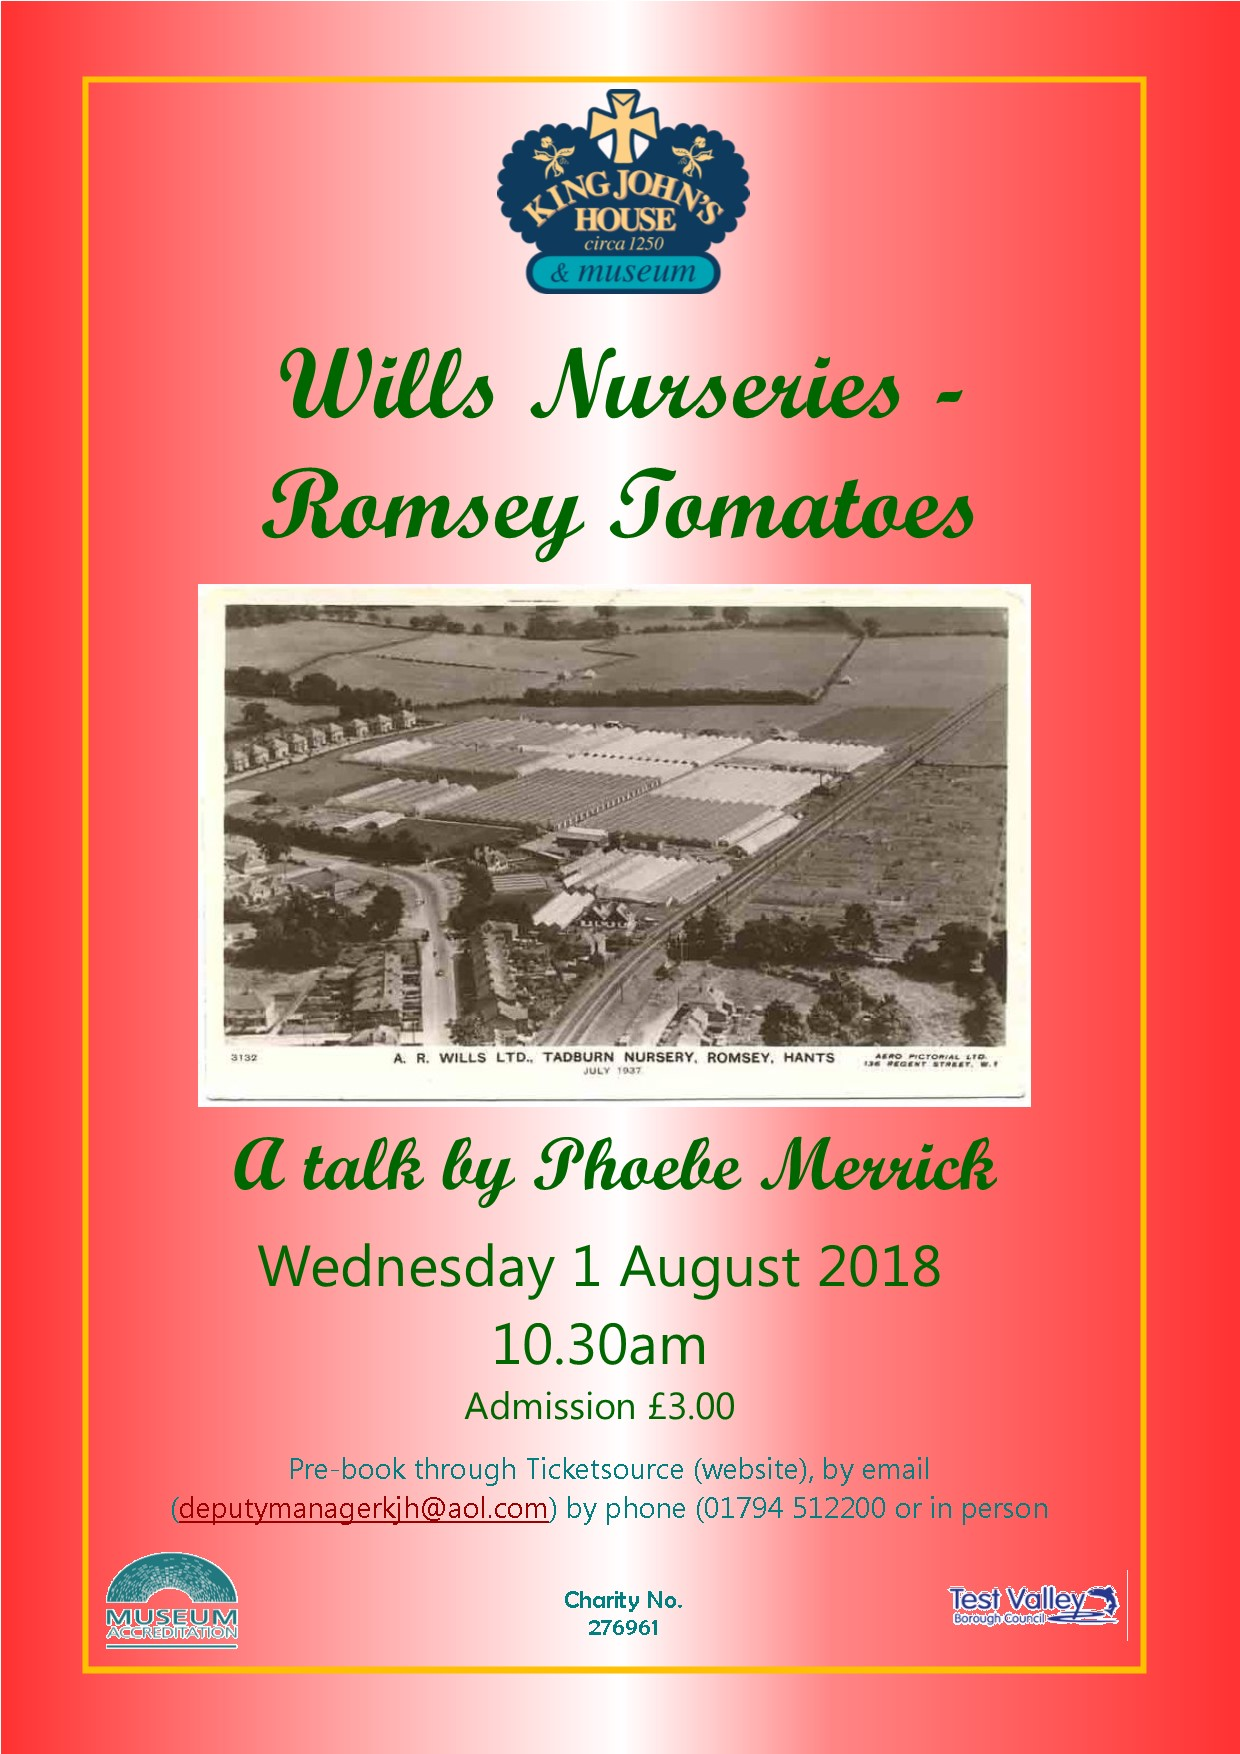 Wills Nurseries, Romsey Tomatoes